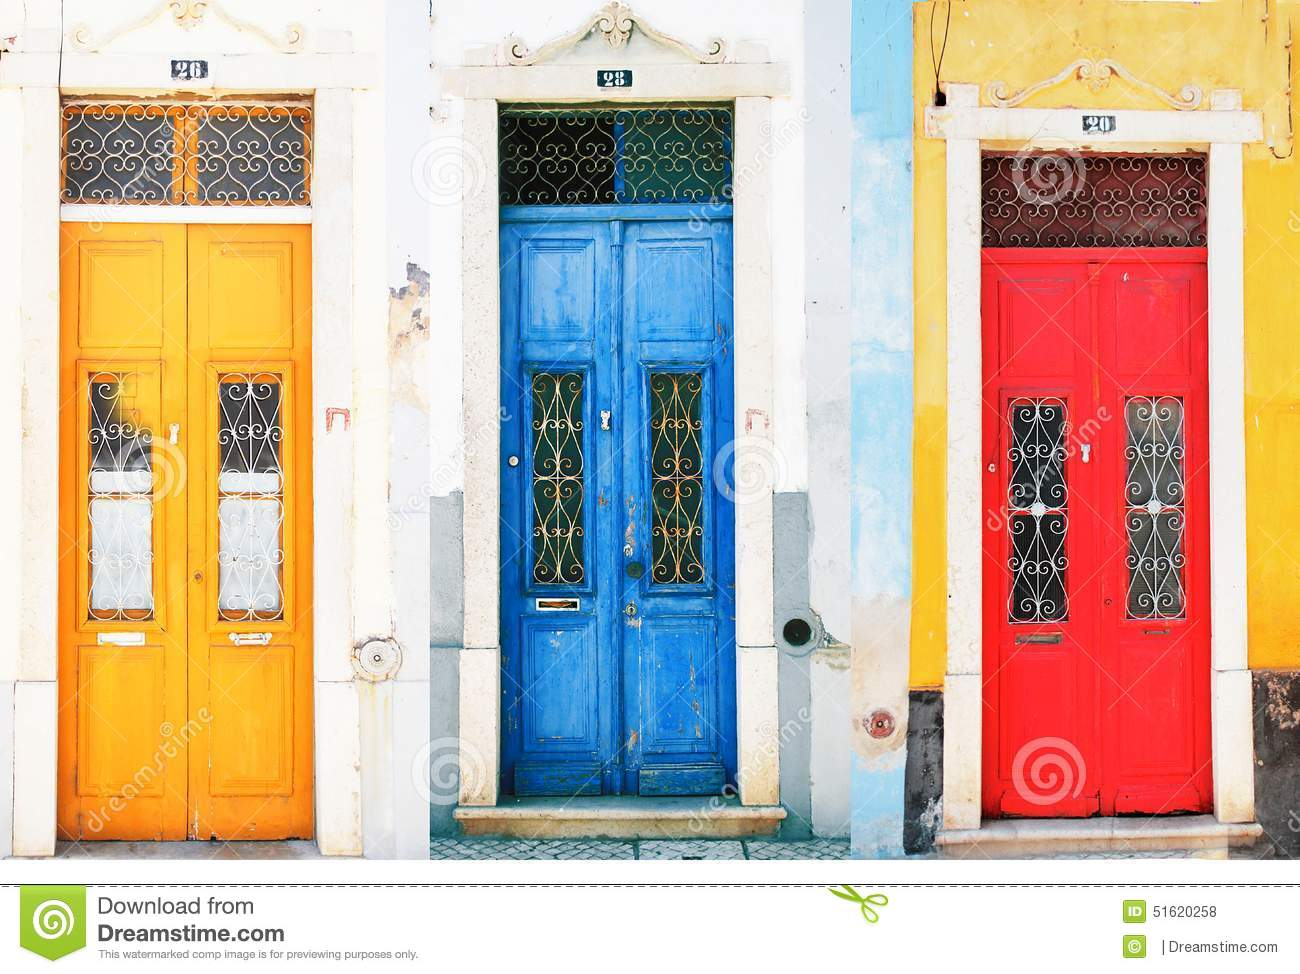 Colorful doors  sc 1 st  Dreamstime.com & Colorful doors stock photo. Image of rojo arquitectura - 51620258